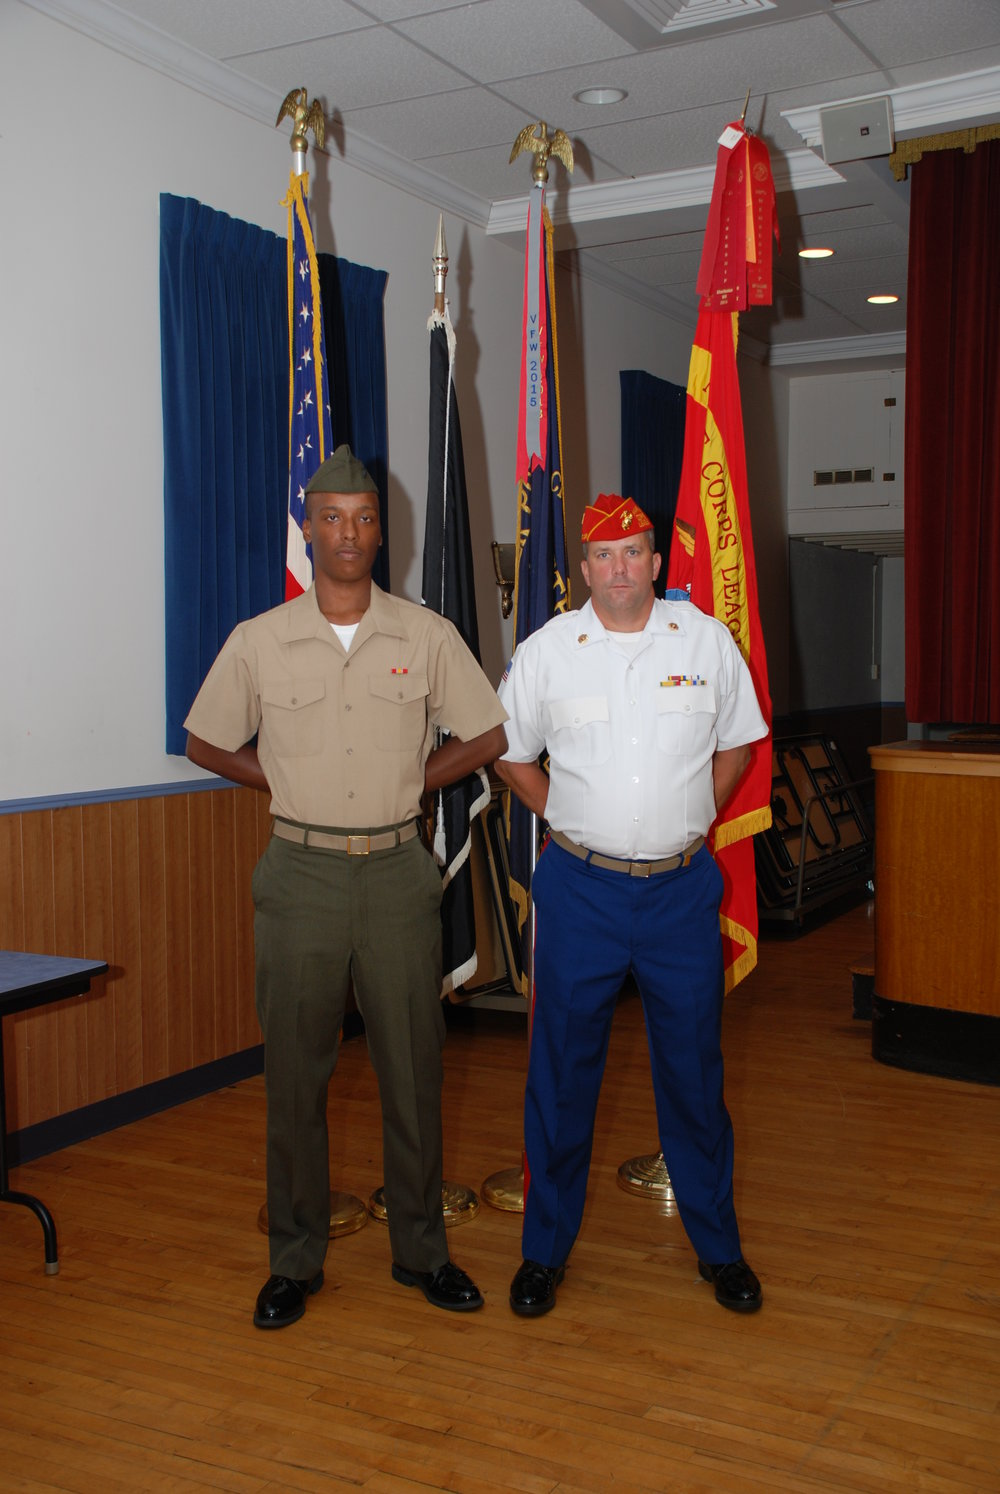 The detachment has a roster of marines that have served from the Korean War era to present day active duty